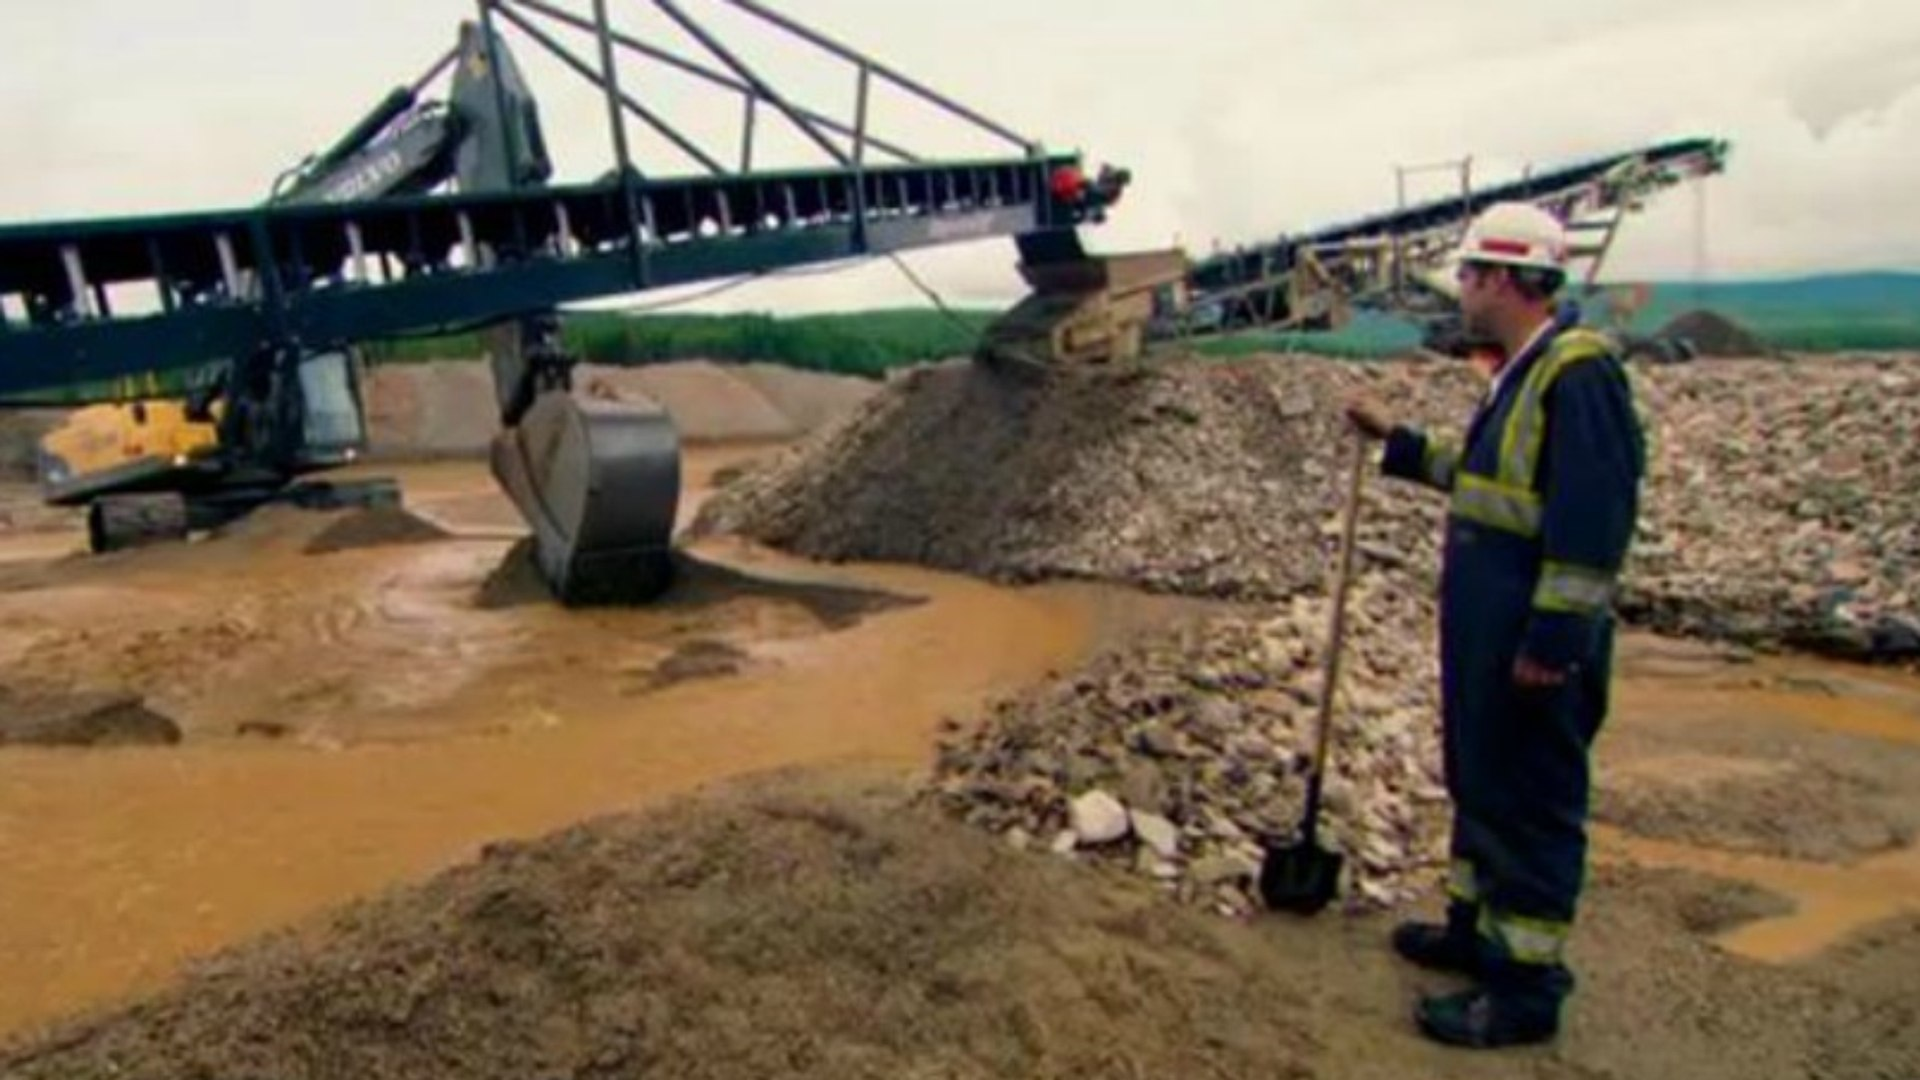 Stream Gold Rush *s08e07* OnLINE Episode (( Release Date )) High Quality